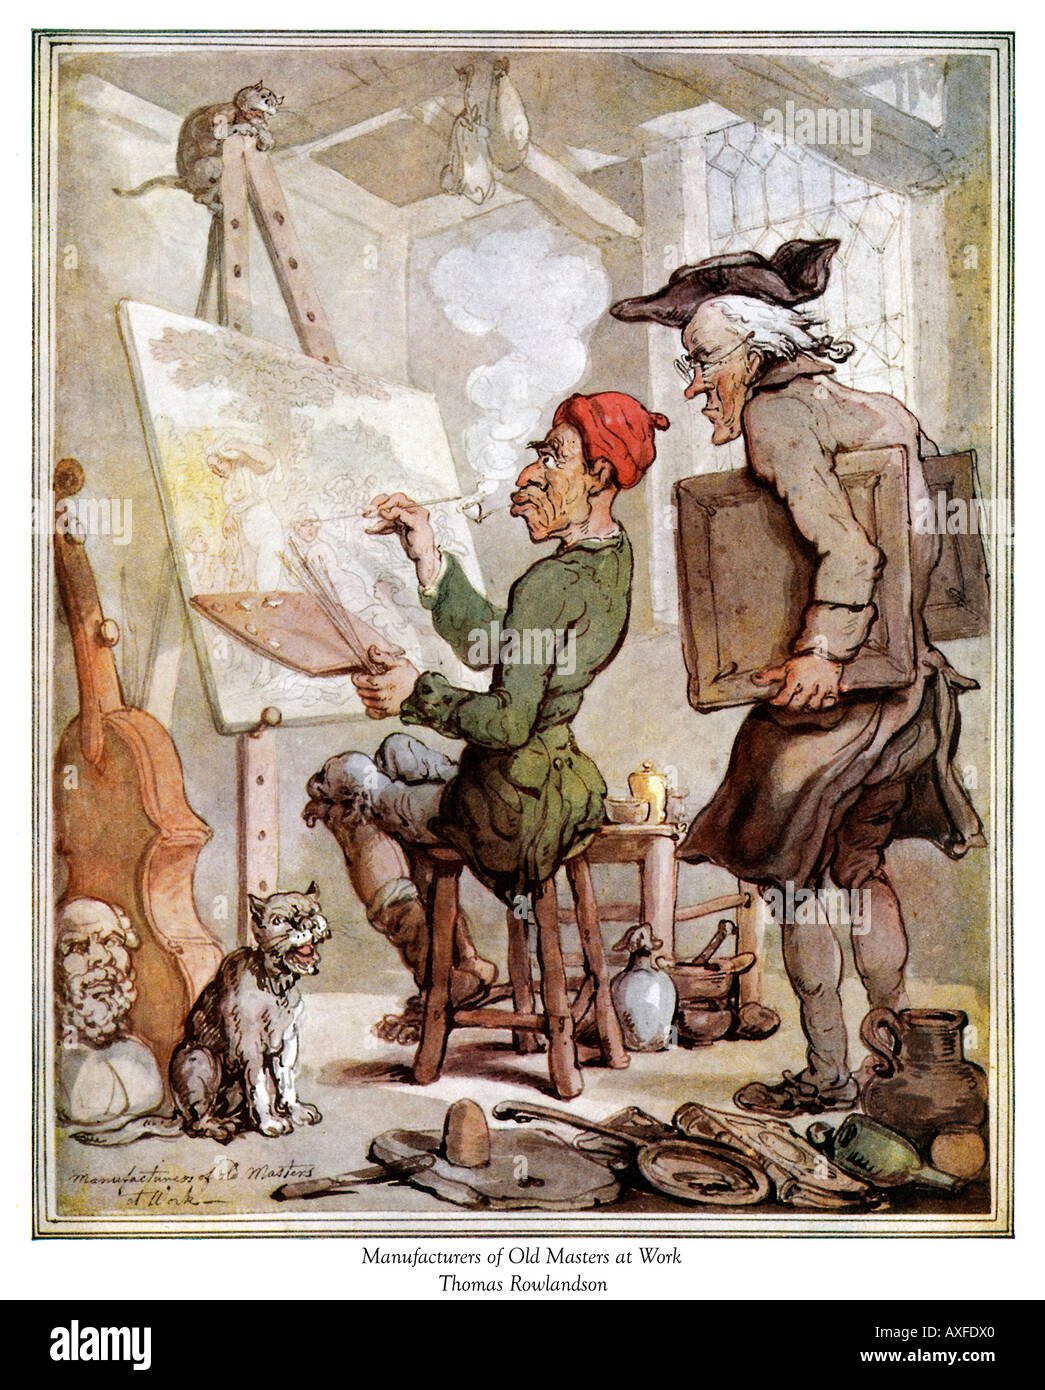 Thomas Rowlandson Manufacturers Of Old Masters Georgian caricature of the studio of art forgers - Stock Image